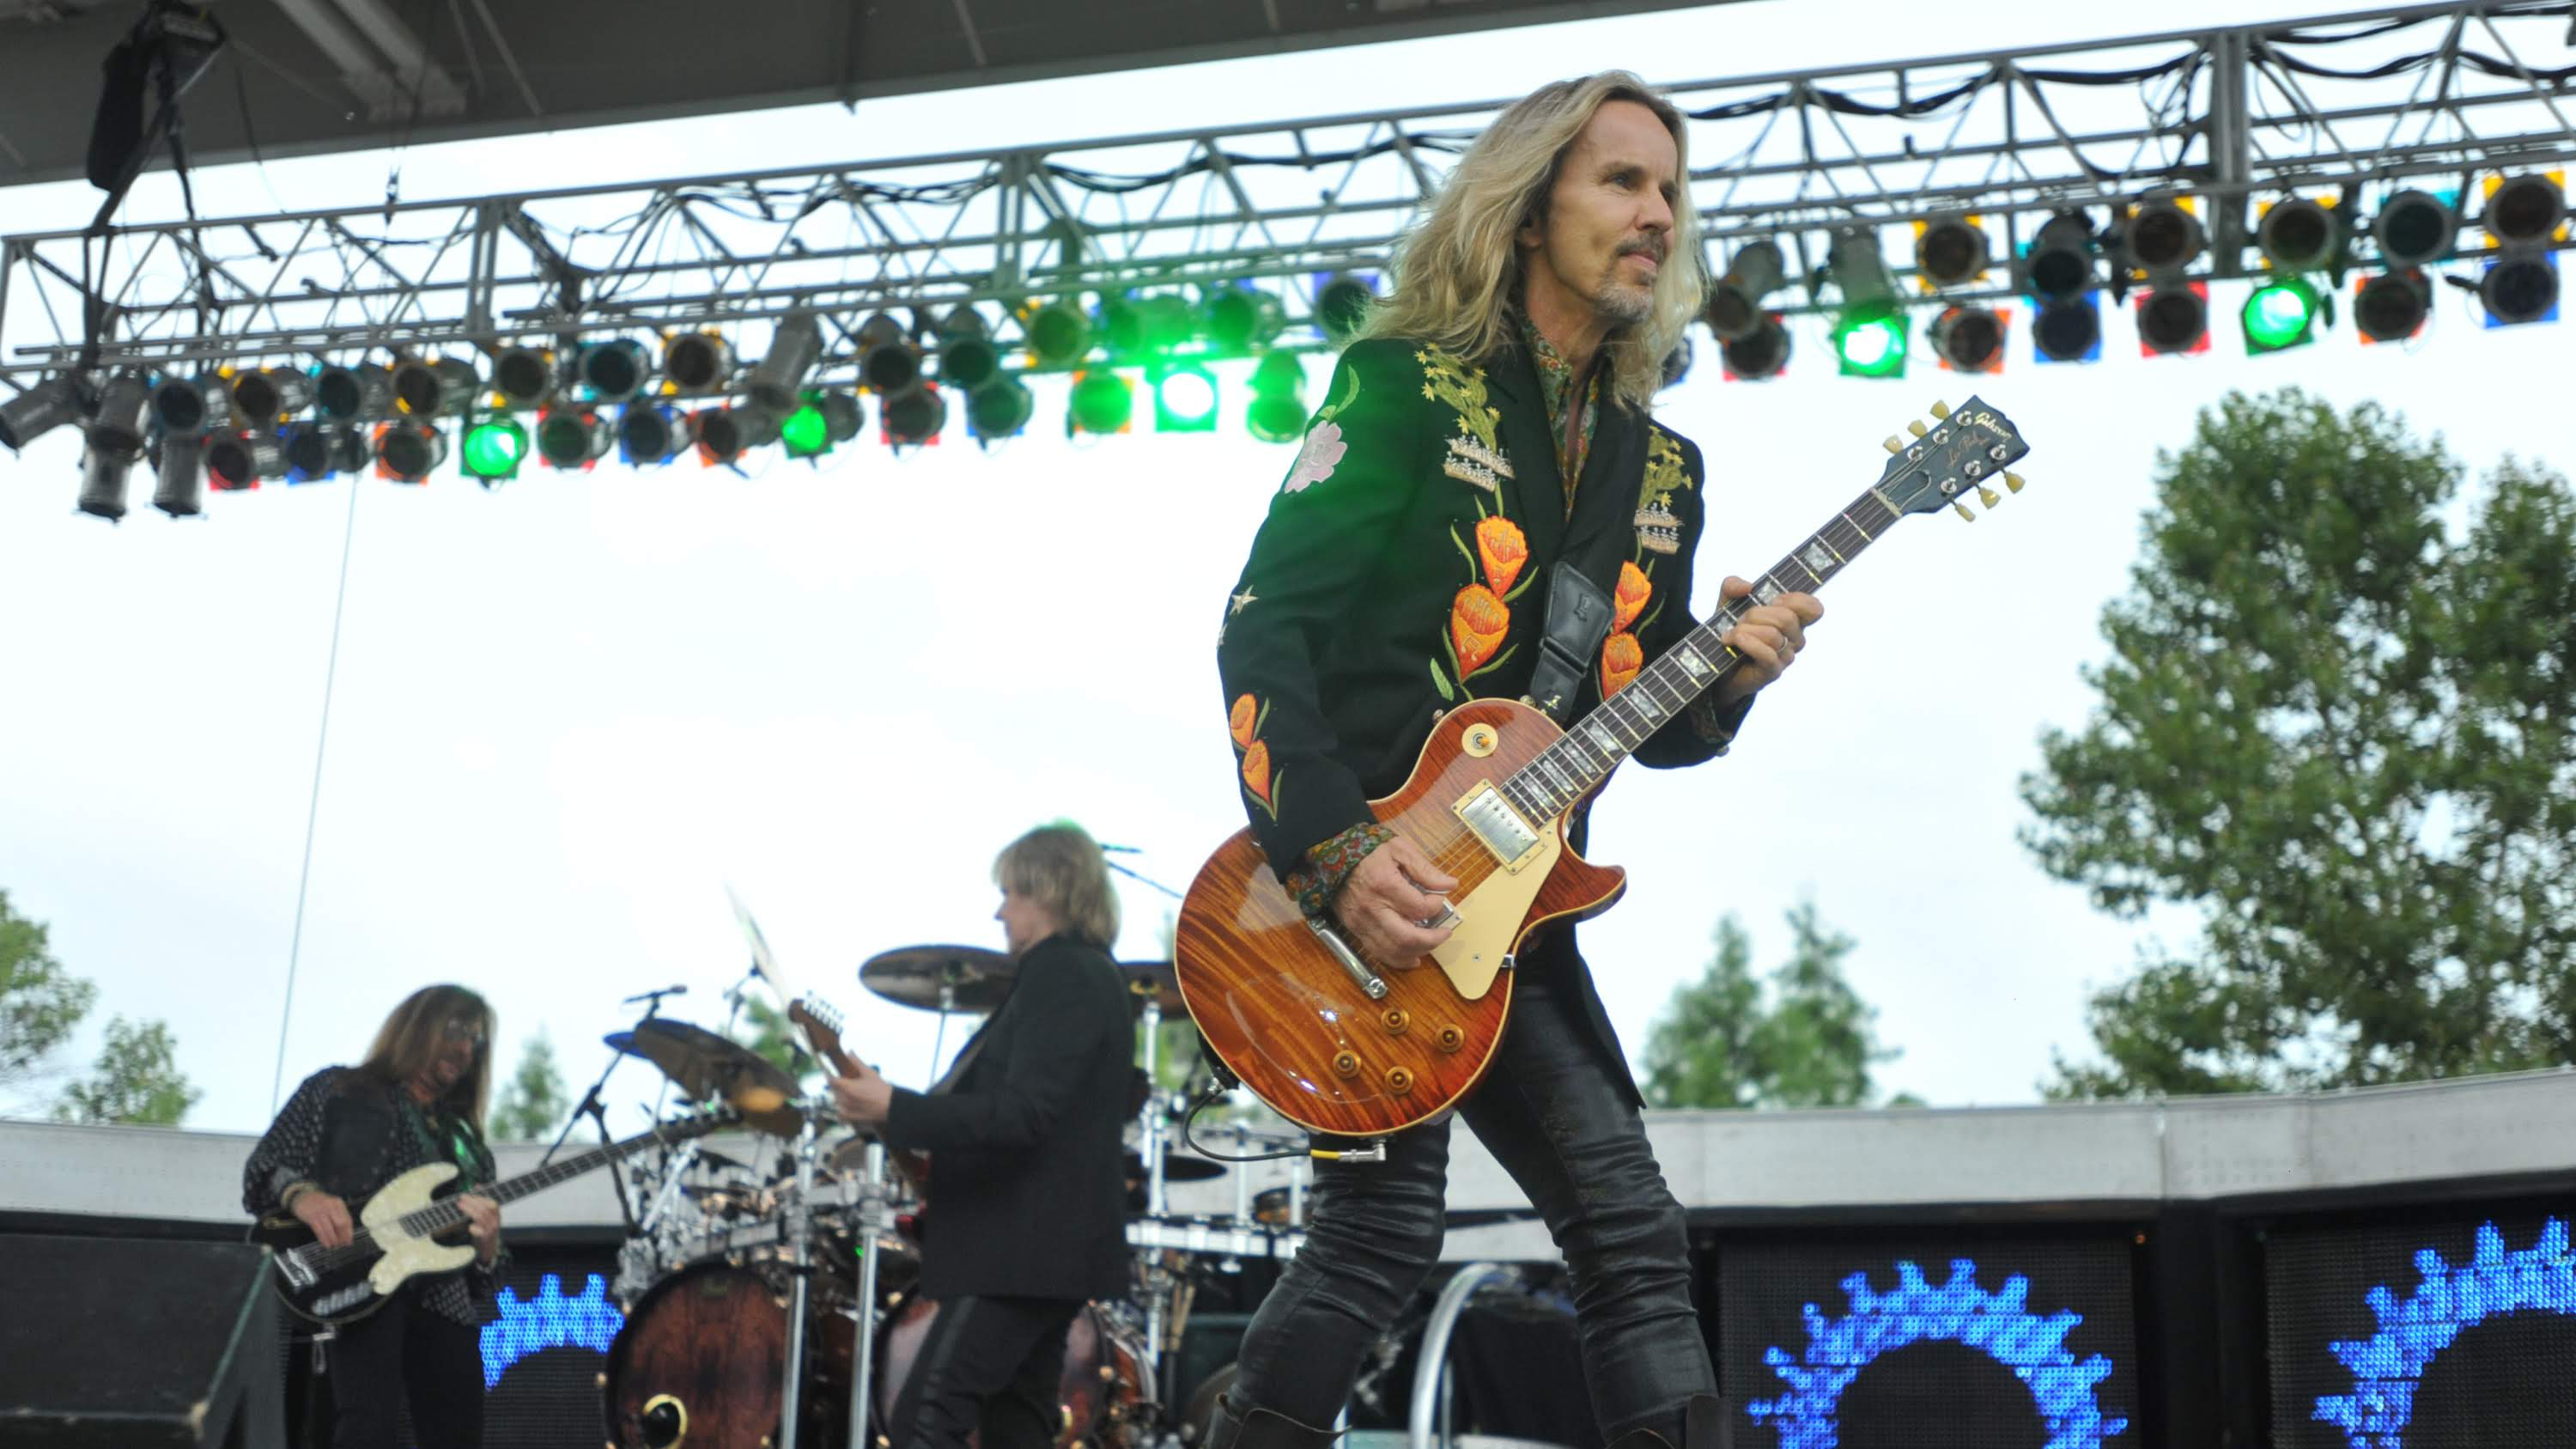 Ne State Fair Concerts 2020.Reo Speedwagon Styx Will Play 2020 Carb Day Concert